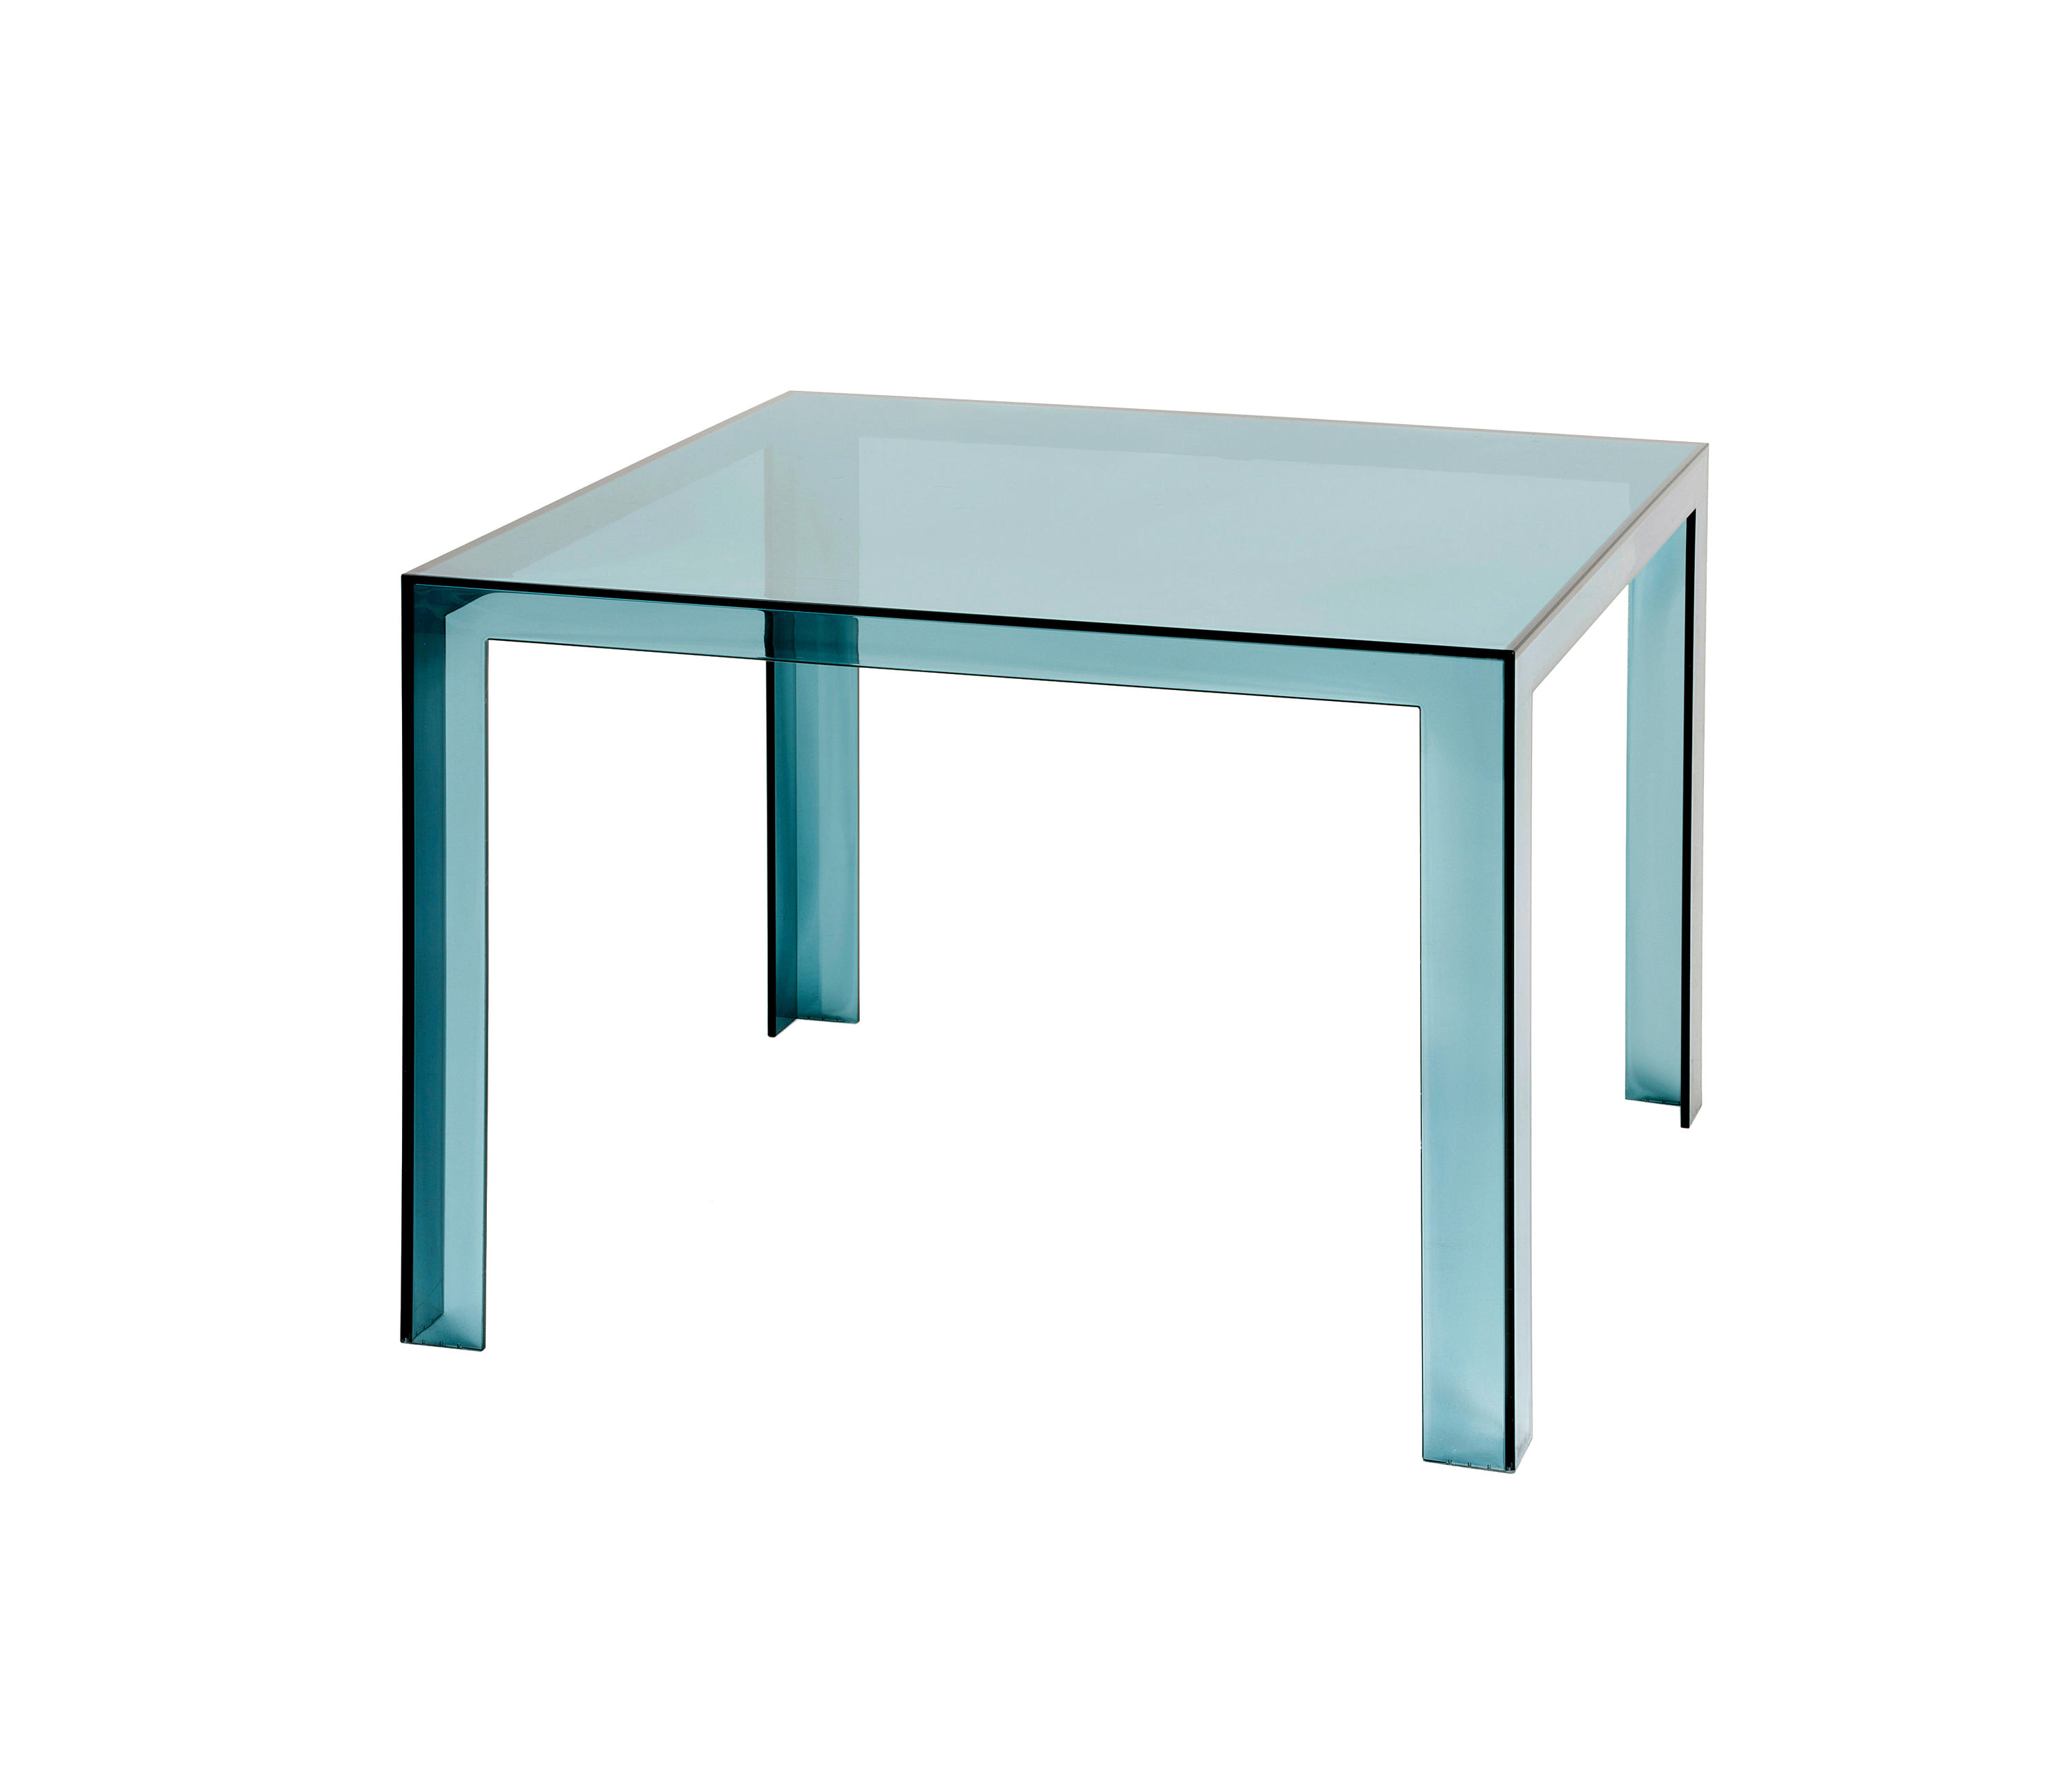 INVISIBLE TABLE Dining Tables From Kartell Architonic - Kartell invisible coffee table